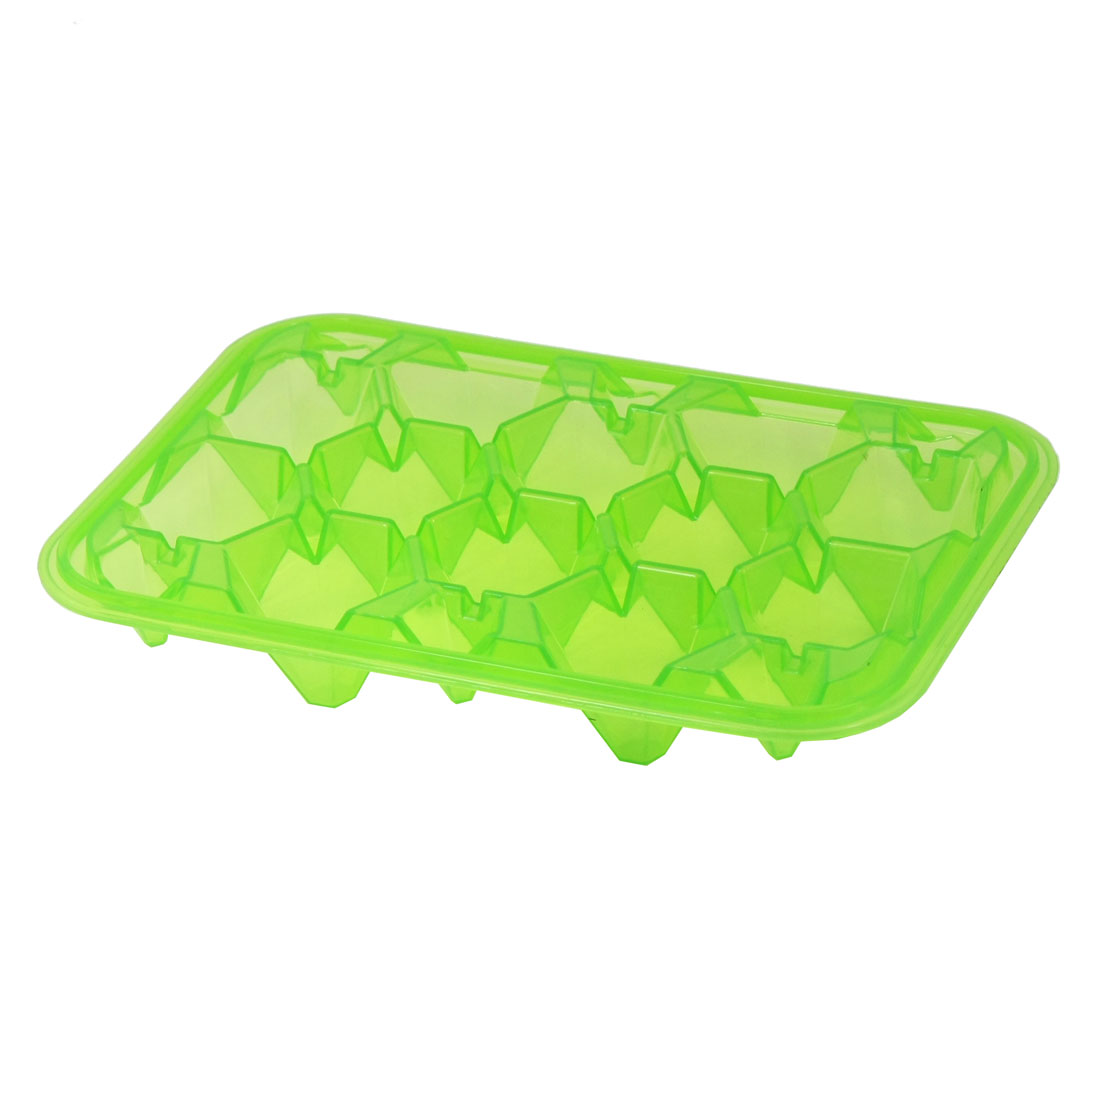 Clear Green Plastic Polygon Shaped Slots 12 Compartments Ice Cube Mould Tray